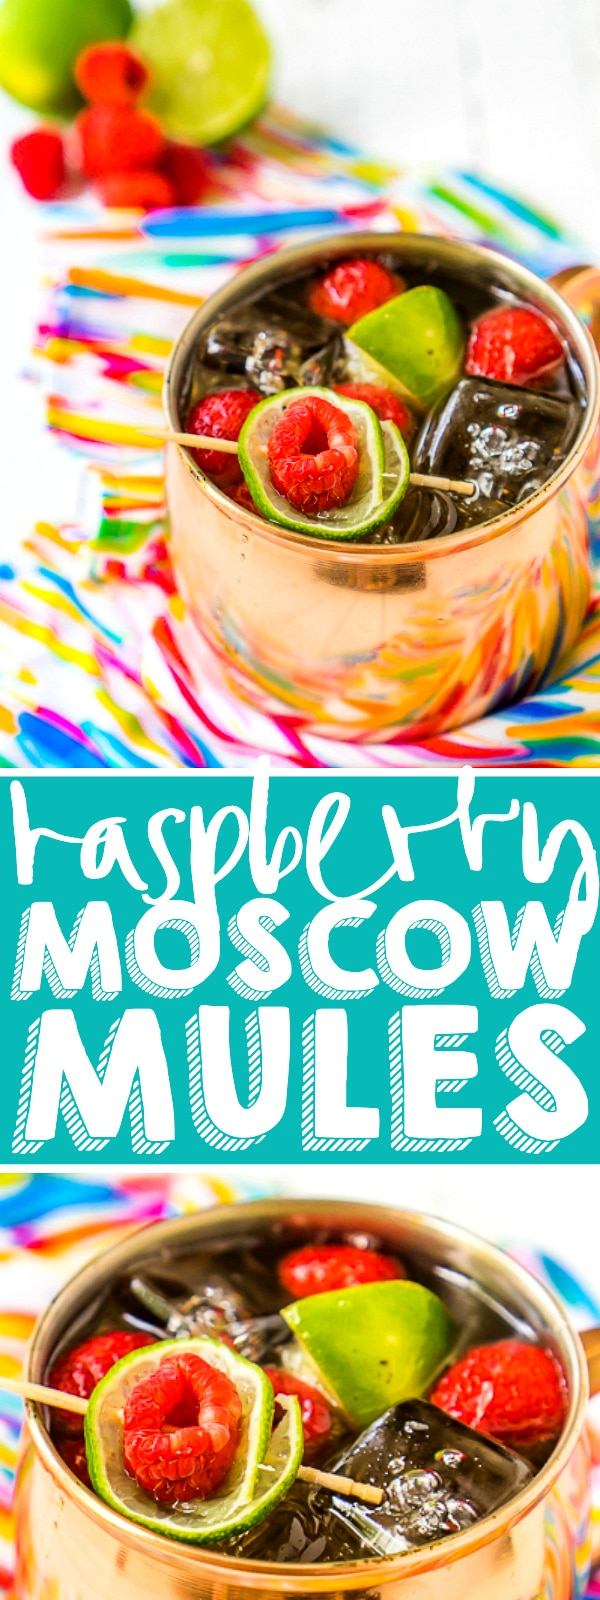 These Raspberry Moscow Mules are my favorite Moscow mule recipe! You are only three ingredients away from the perfect summer cocktail that is both sweet and a little bit spicy! Raspberry and limes makes for a refreshing cocktail!  | THE LOVE NERDS #cocktailrecipe #summerdrinks #moscowmulerecipe #raspberrycocktail